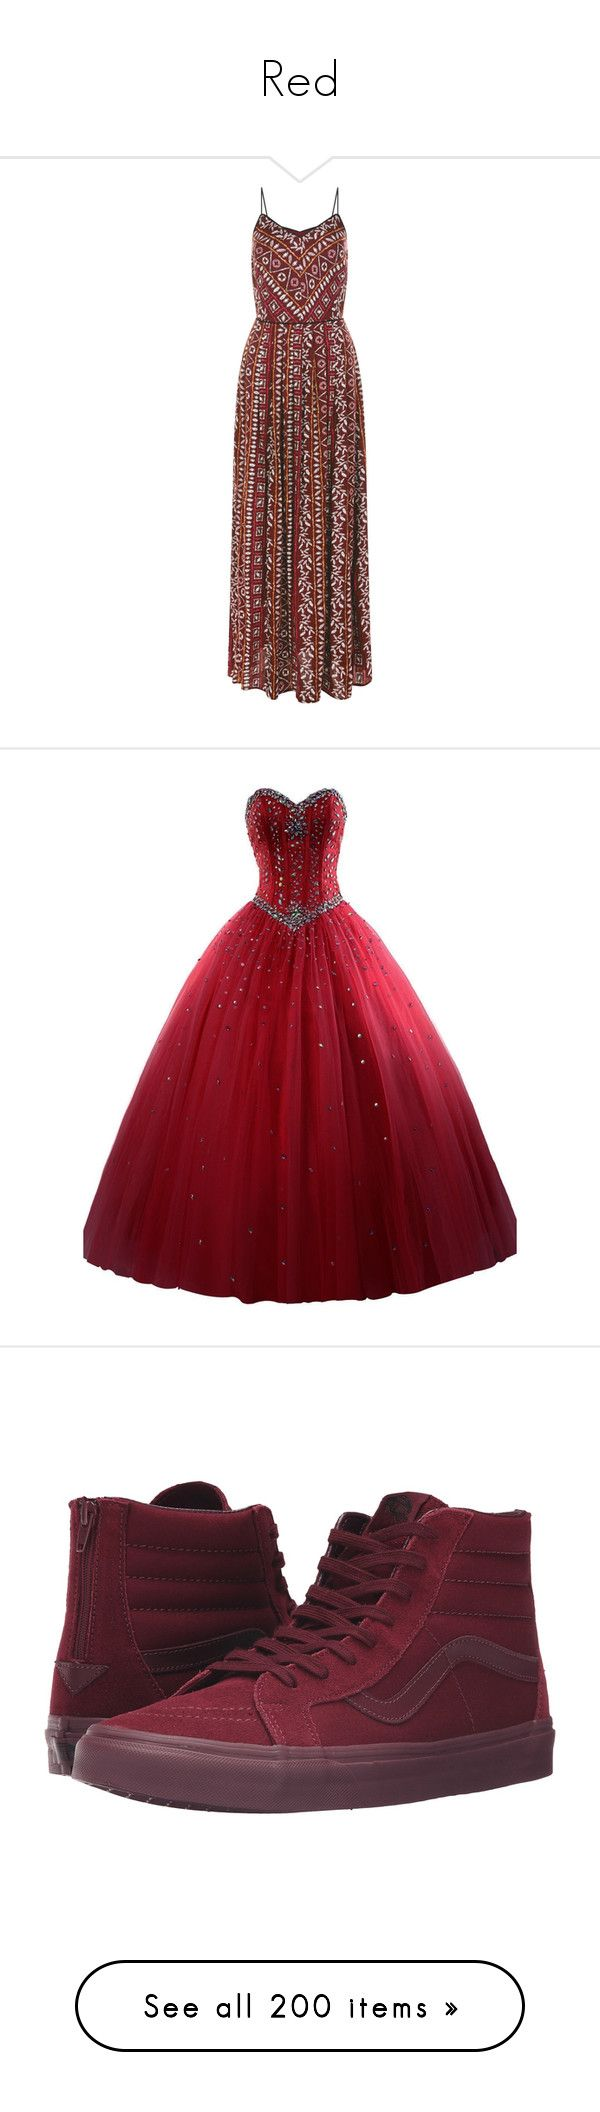 """""""Red"""" by ac-awesome ❤ liked on Polyvore featuring dresses, pink pattern, red pleated dress, print maxi dress, pleated dress, red dress, summer maxi dresses, beaded sweetheart dress, sweetheart neckline dress and red organza dress"""